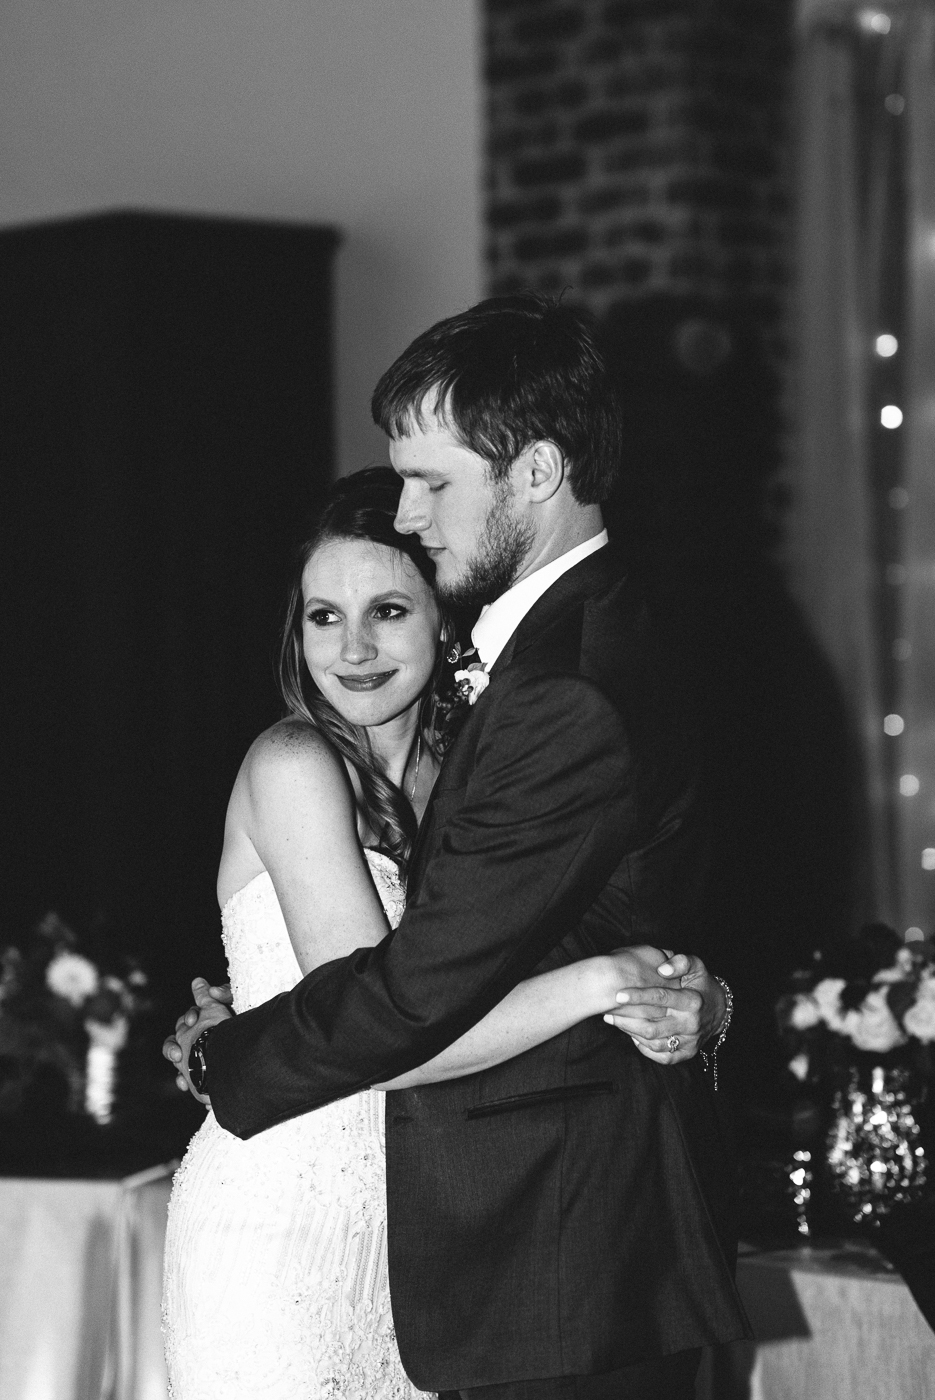 husband and wife black and white hug embrace love happily ever after